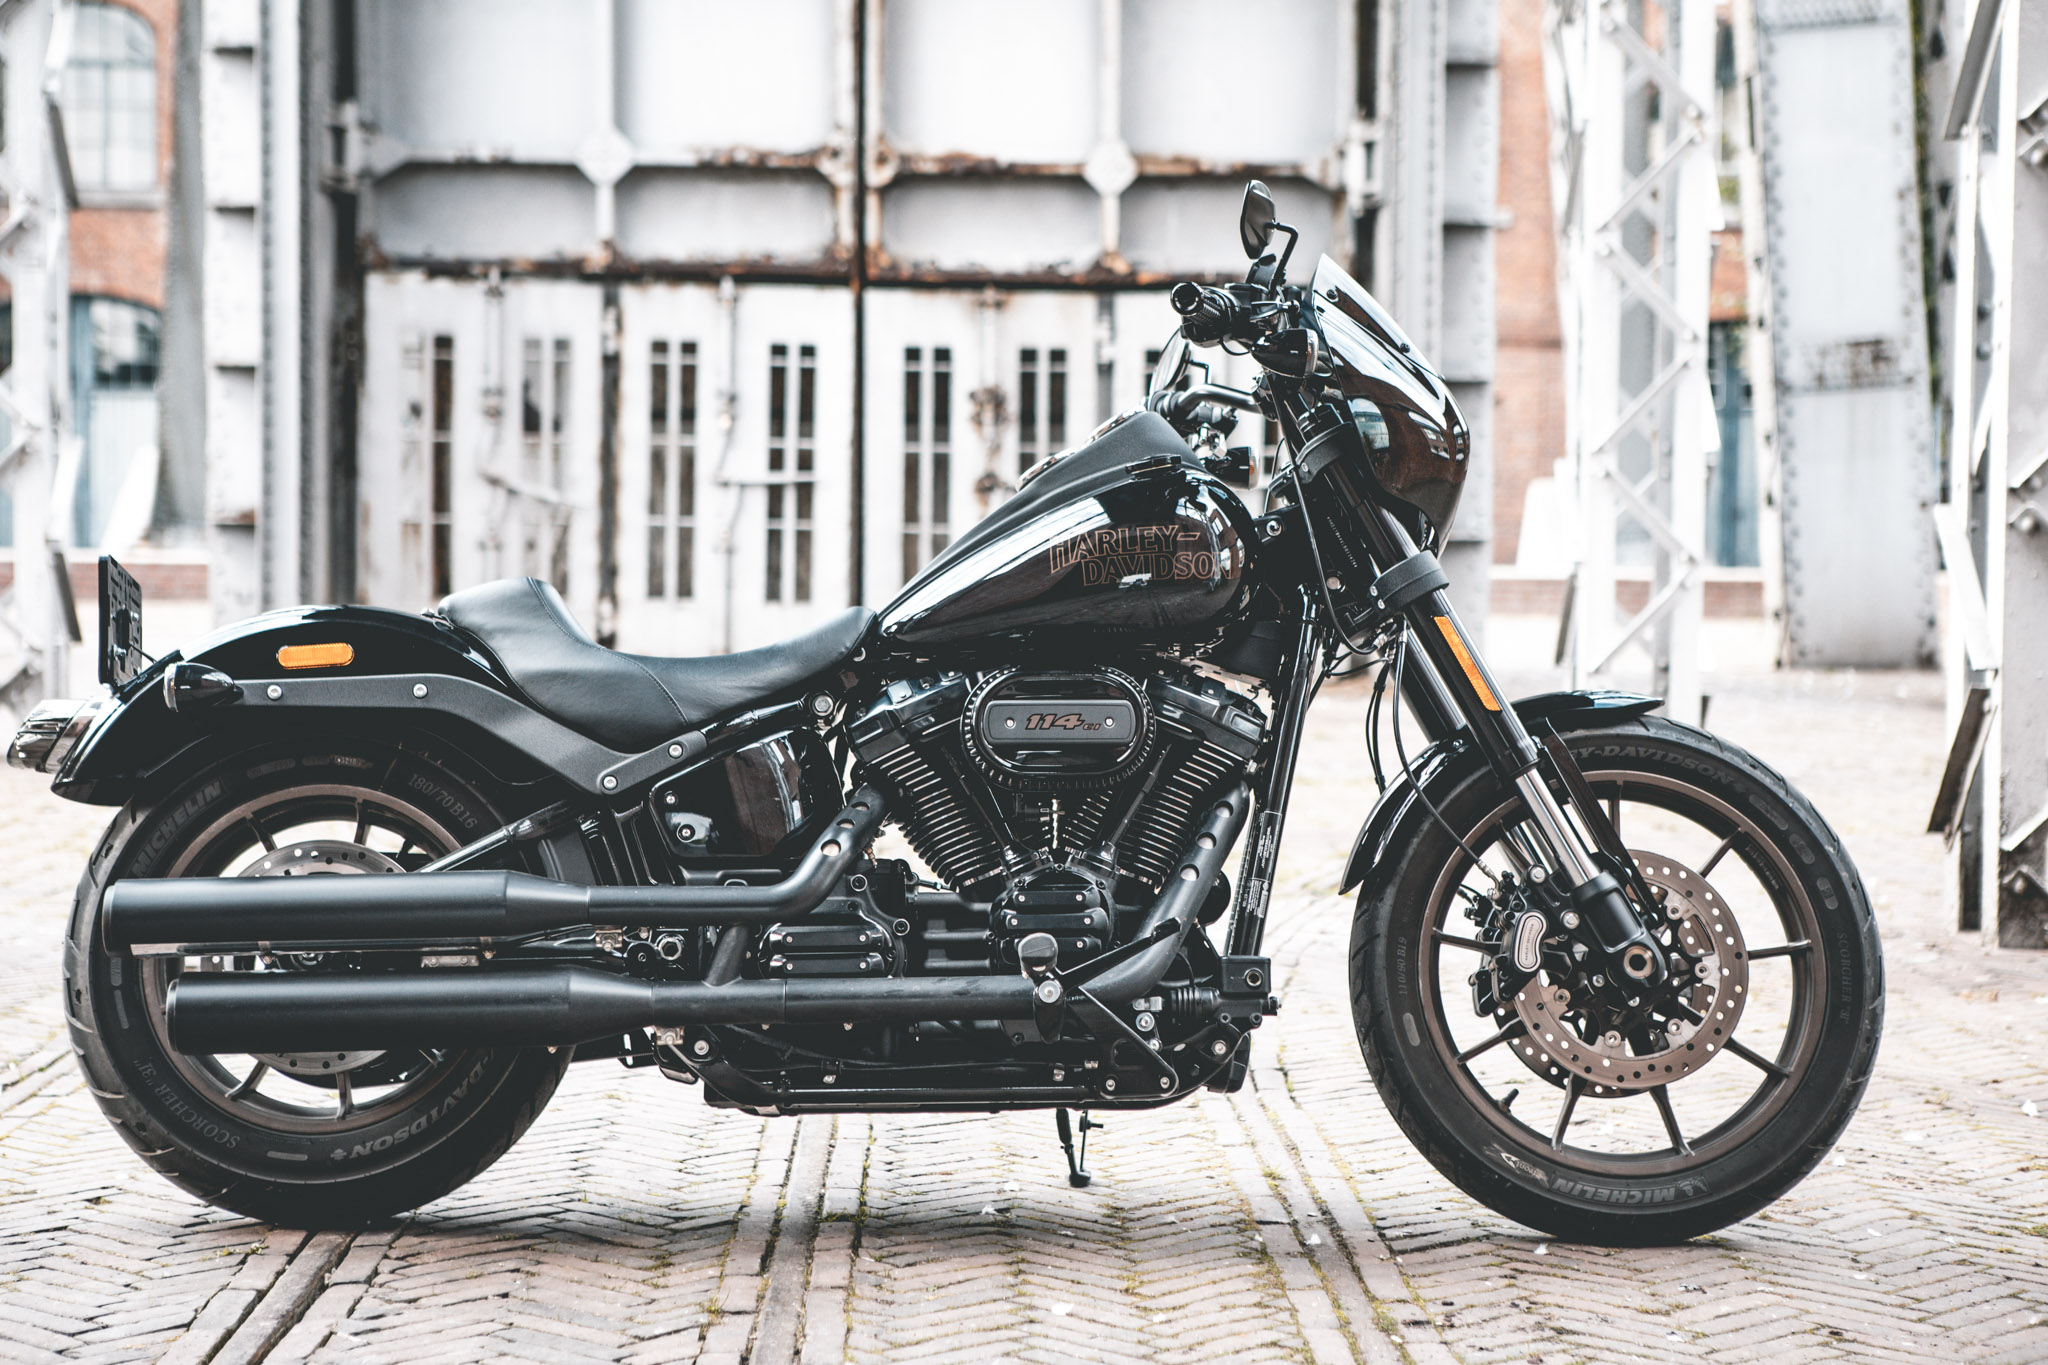 Harley Davidson 2020 Low Rider S black